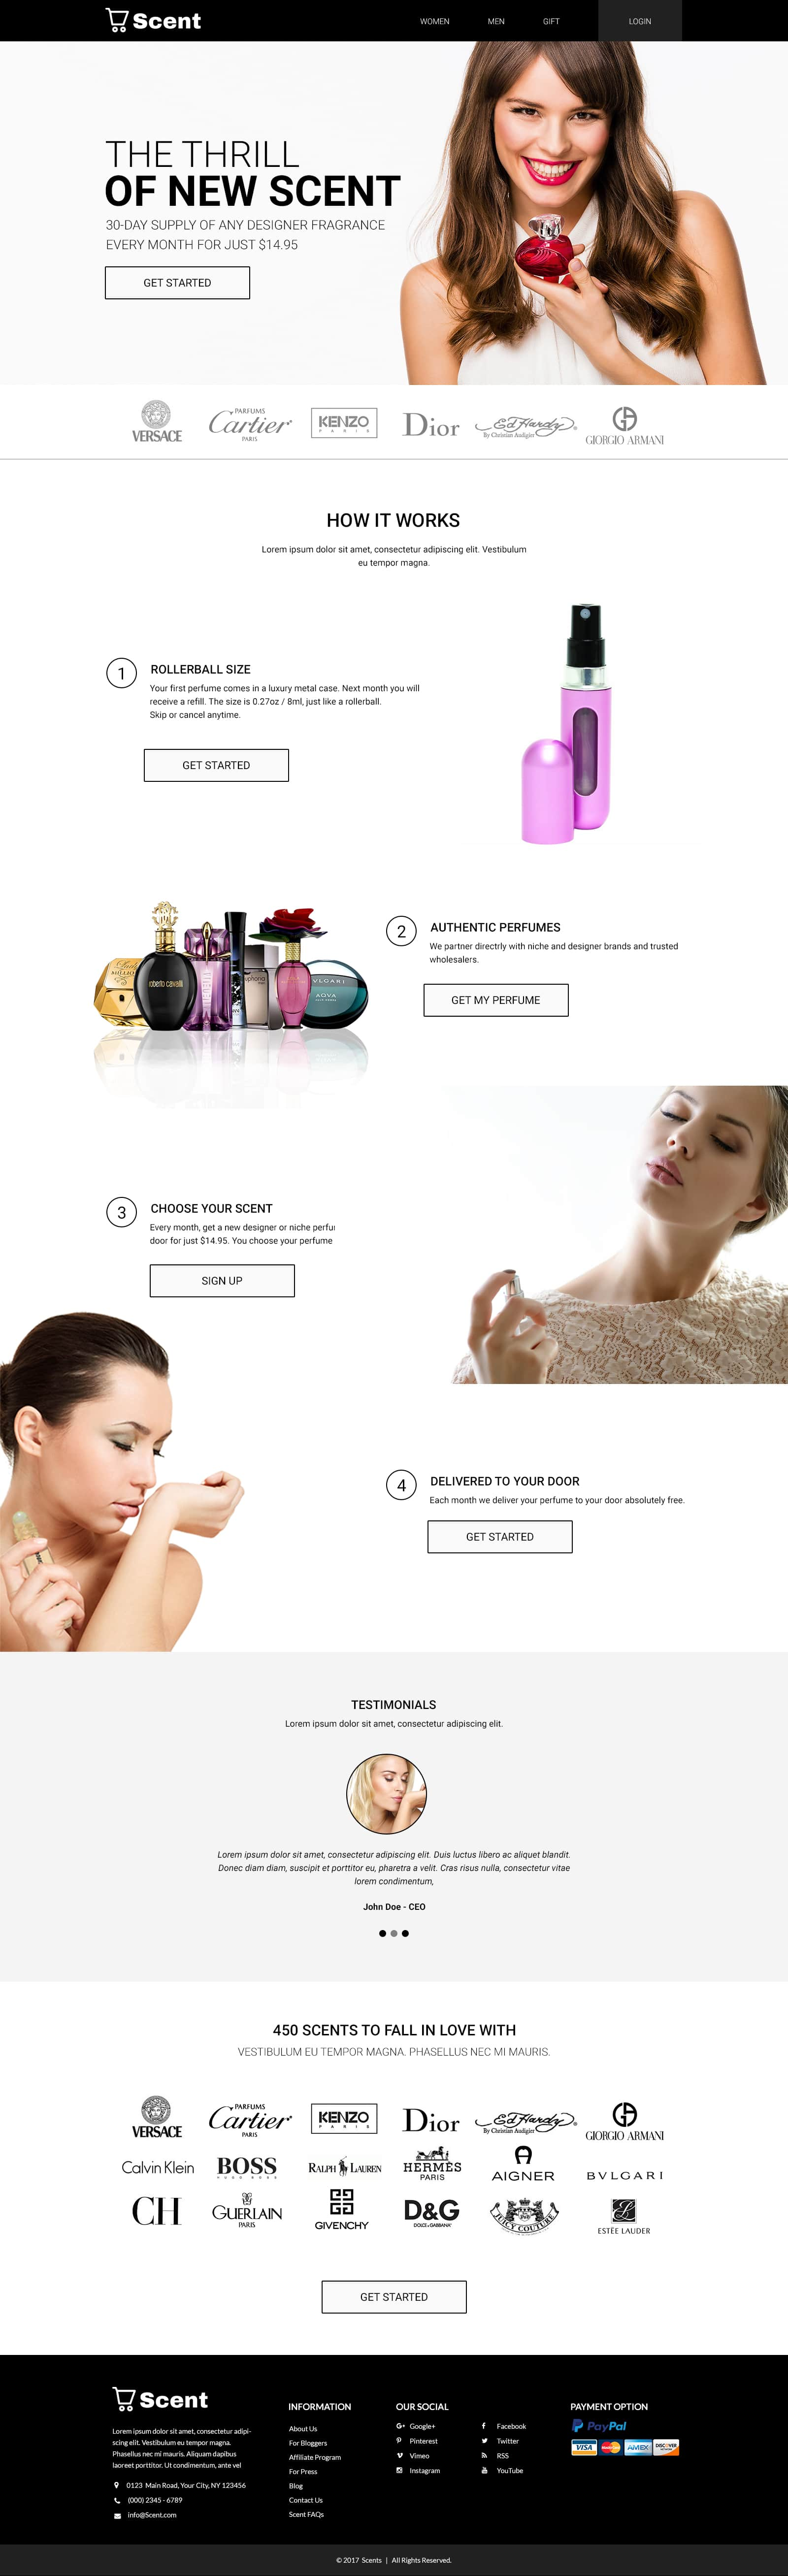 Custom Website Design for Scent - Logo Design Deck